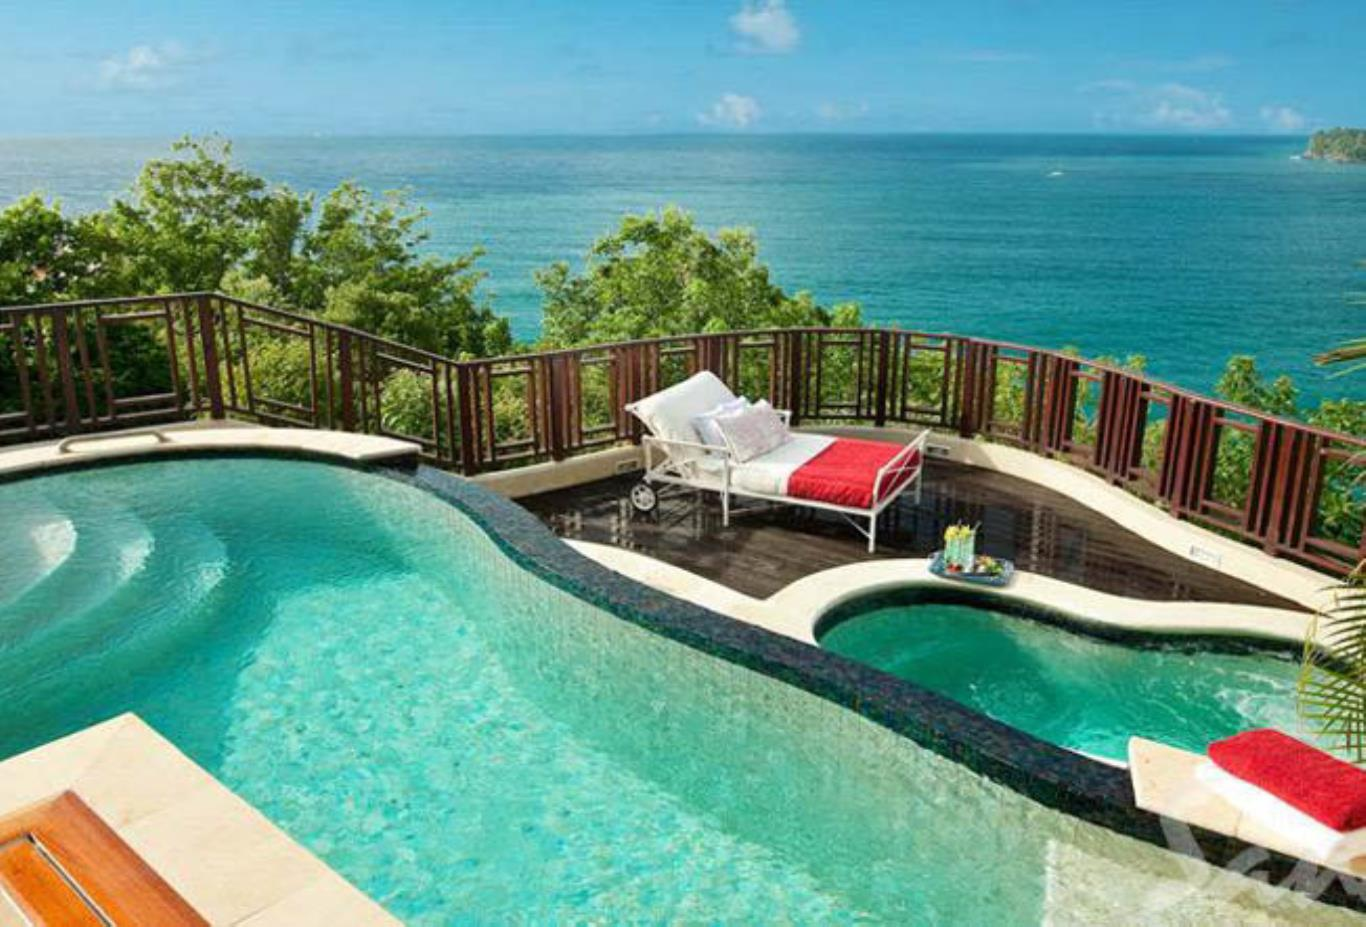 Sunset Oceanview Bluff Millionaire Butler Villas Suite with Private Pool Sanctuary - SV